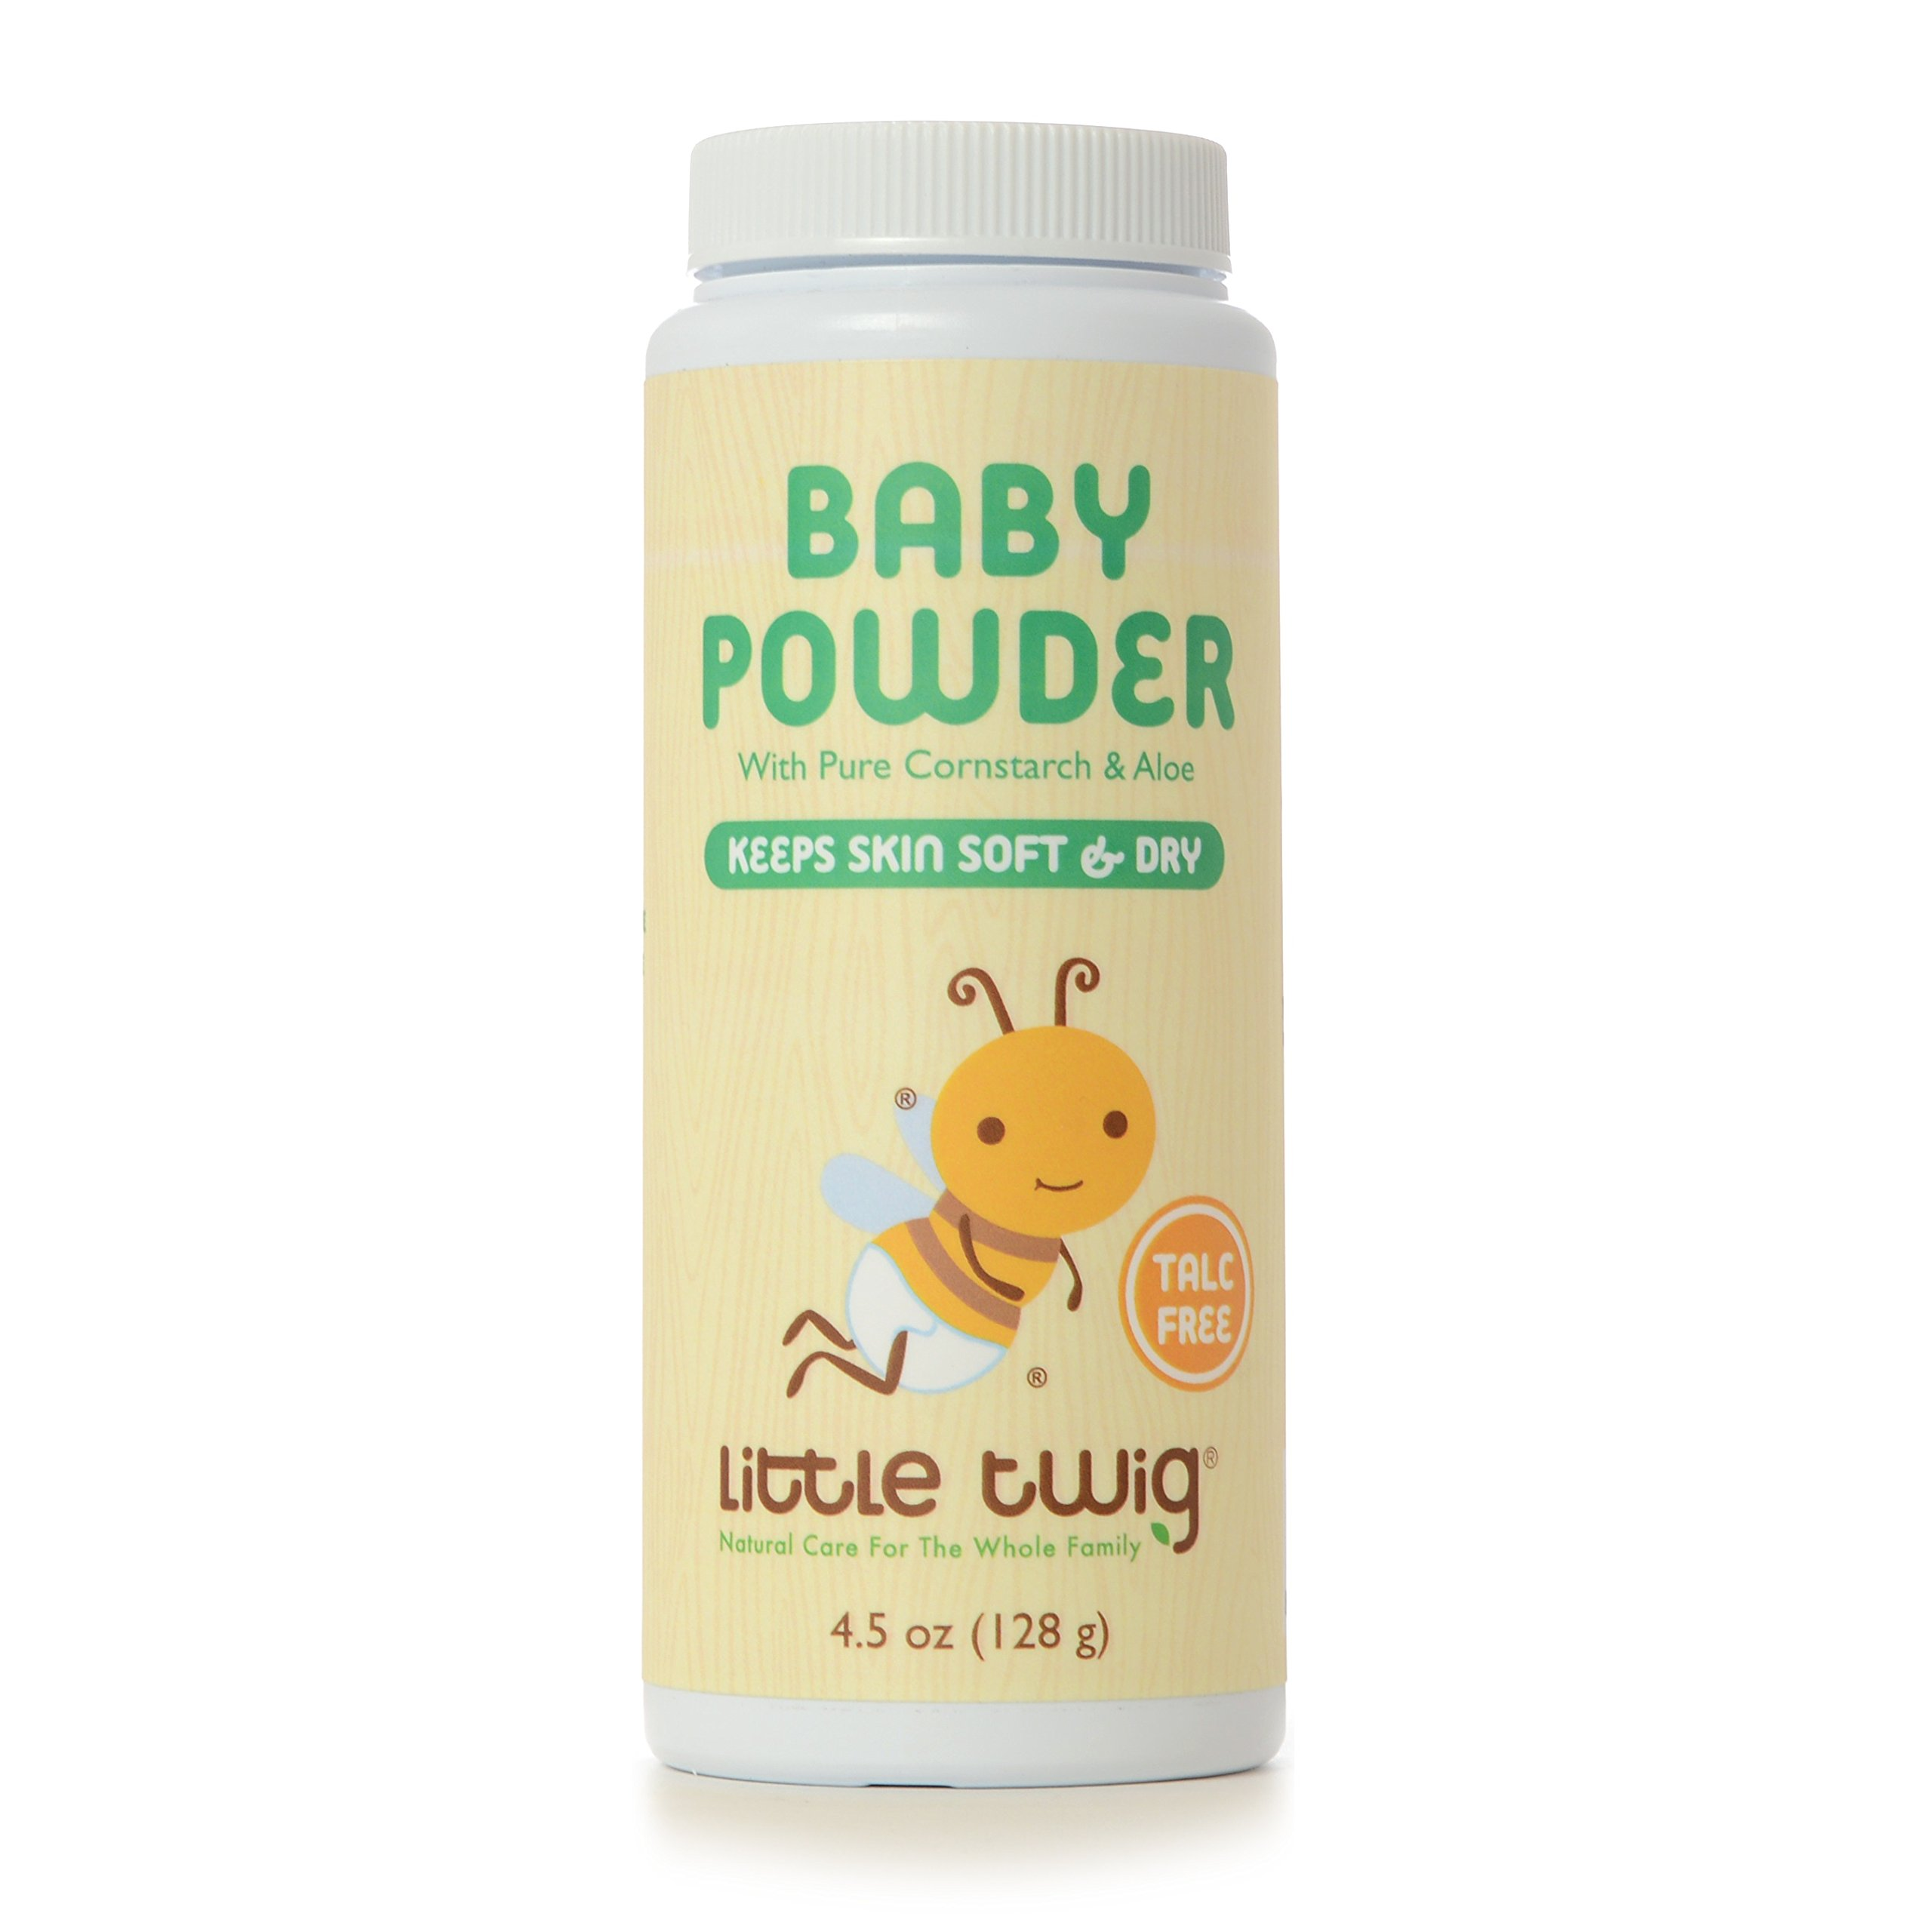 Little Twig All Natural Baby Powder, Unscented, 4.5 Fluid Oz by Little Twig